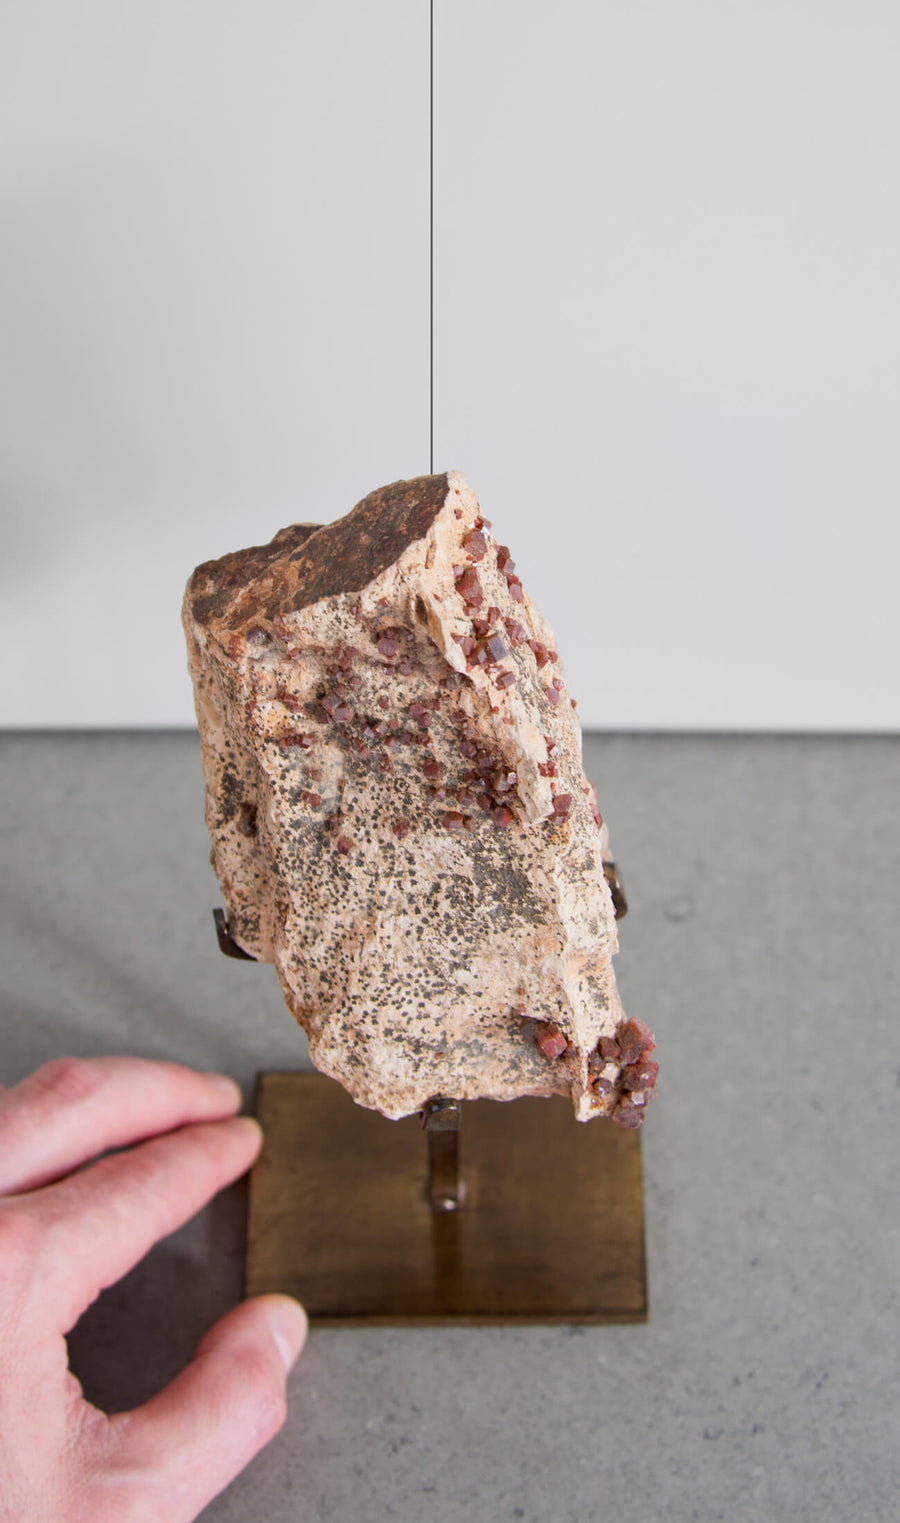 Beautiful red Vanadanite mineral gems in pink stone on a custom designed bronze Stand measuring 206mm